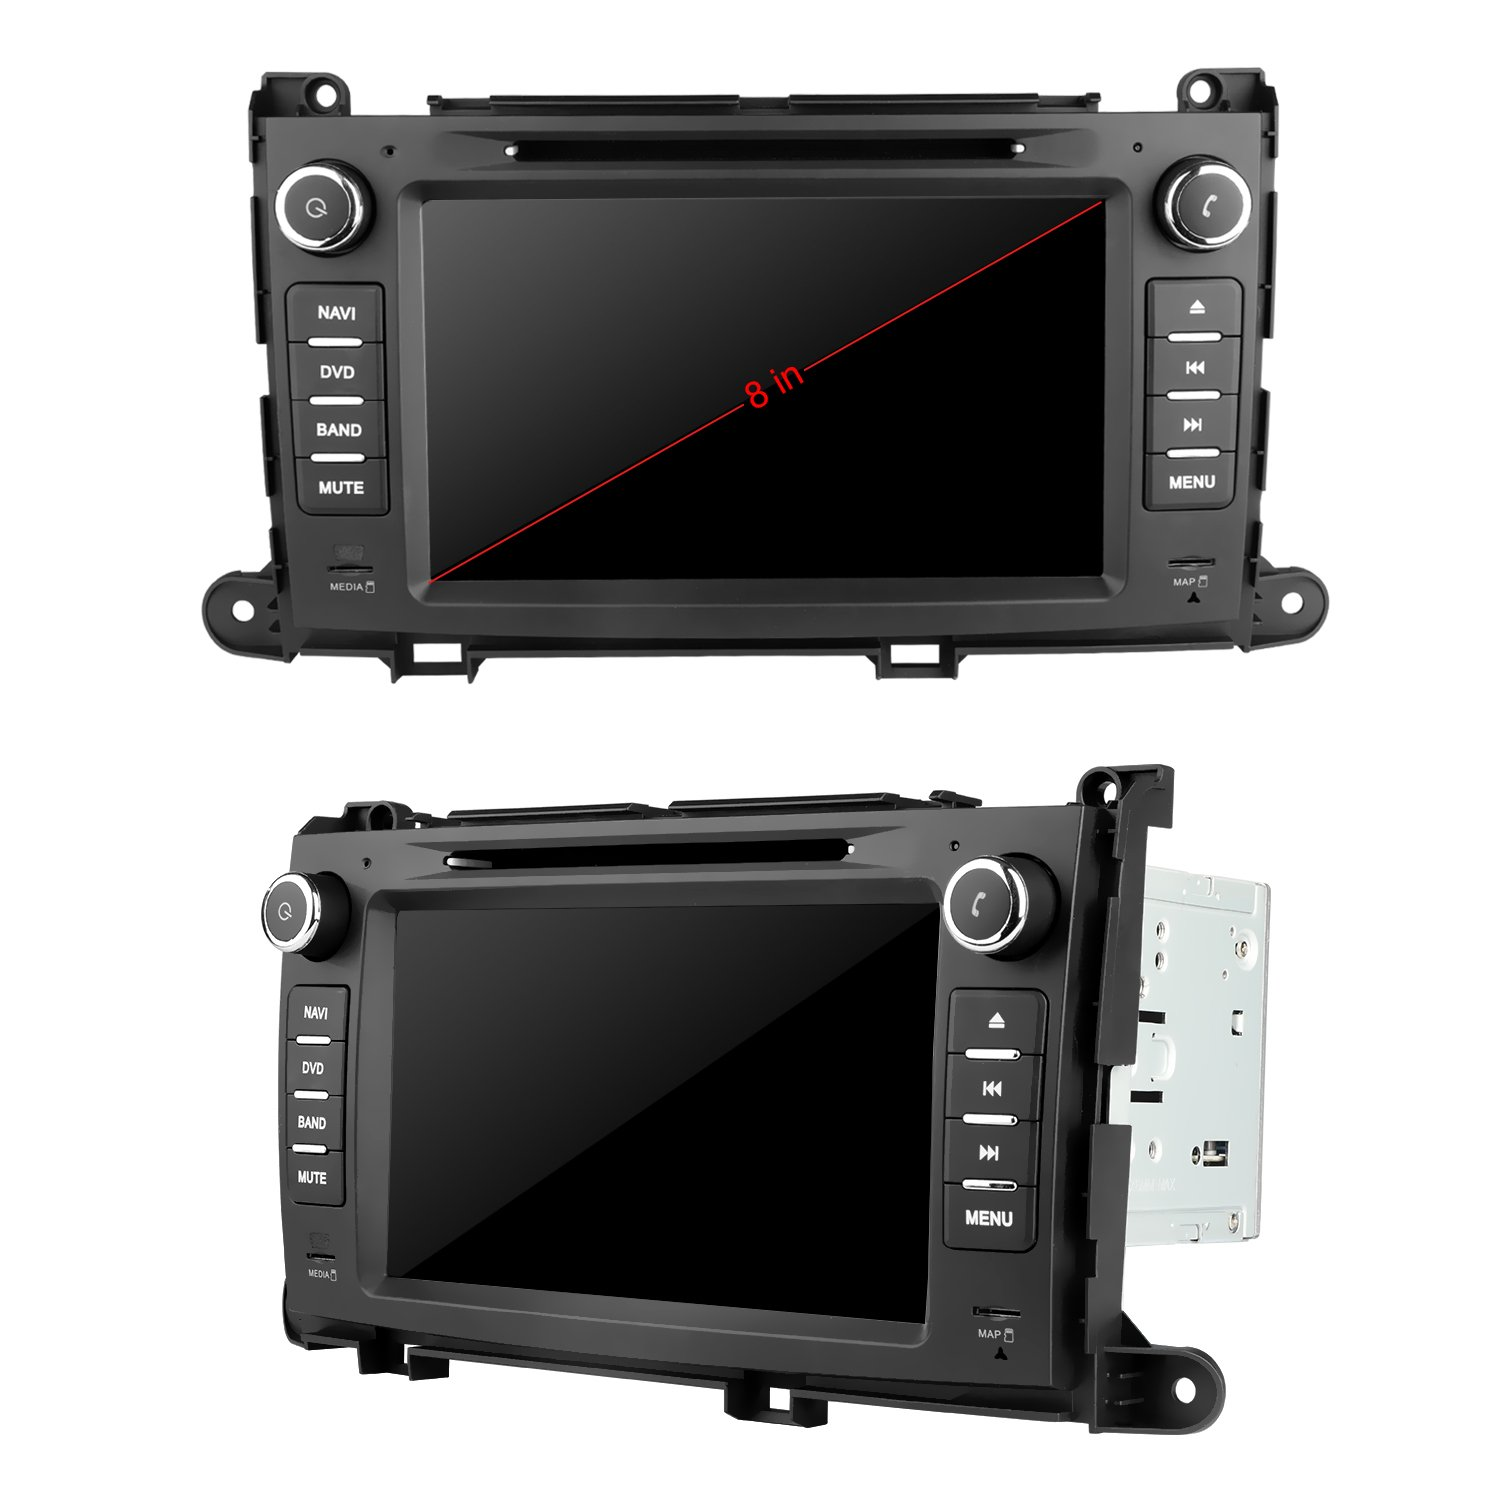 Amazon.com: Toyota Sienna 2011 2012 2013 2014 GPS Navigation Radio System, 8 Inch Touchscreen Car Stereo Bluetooth In-dash Navigation Supports MirrorLink ...